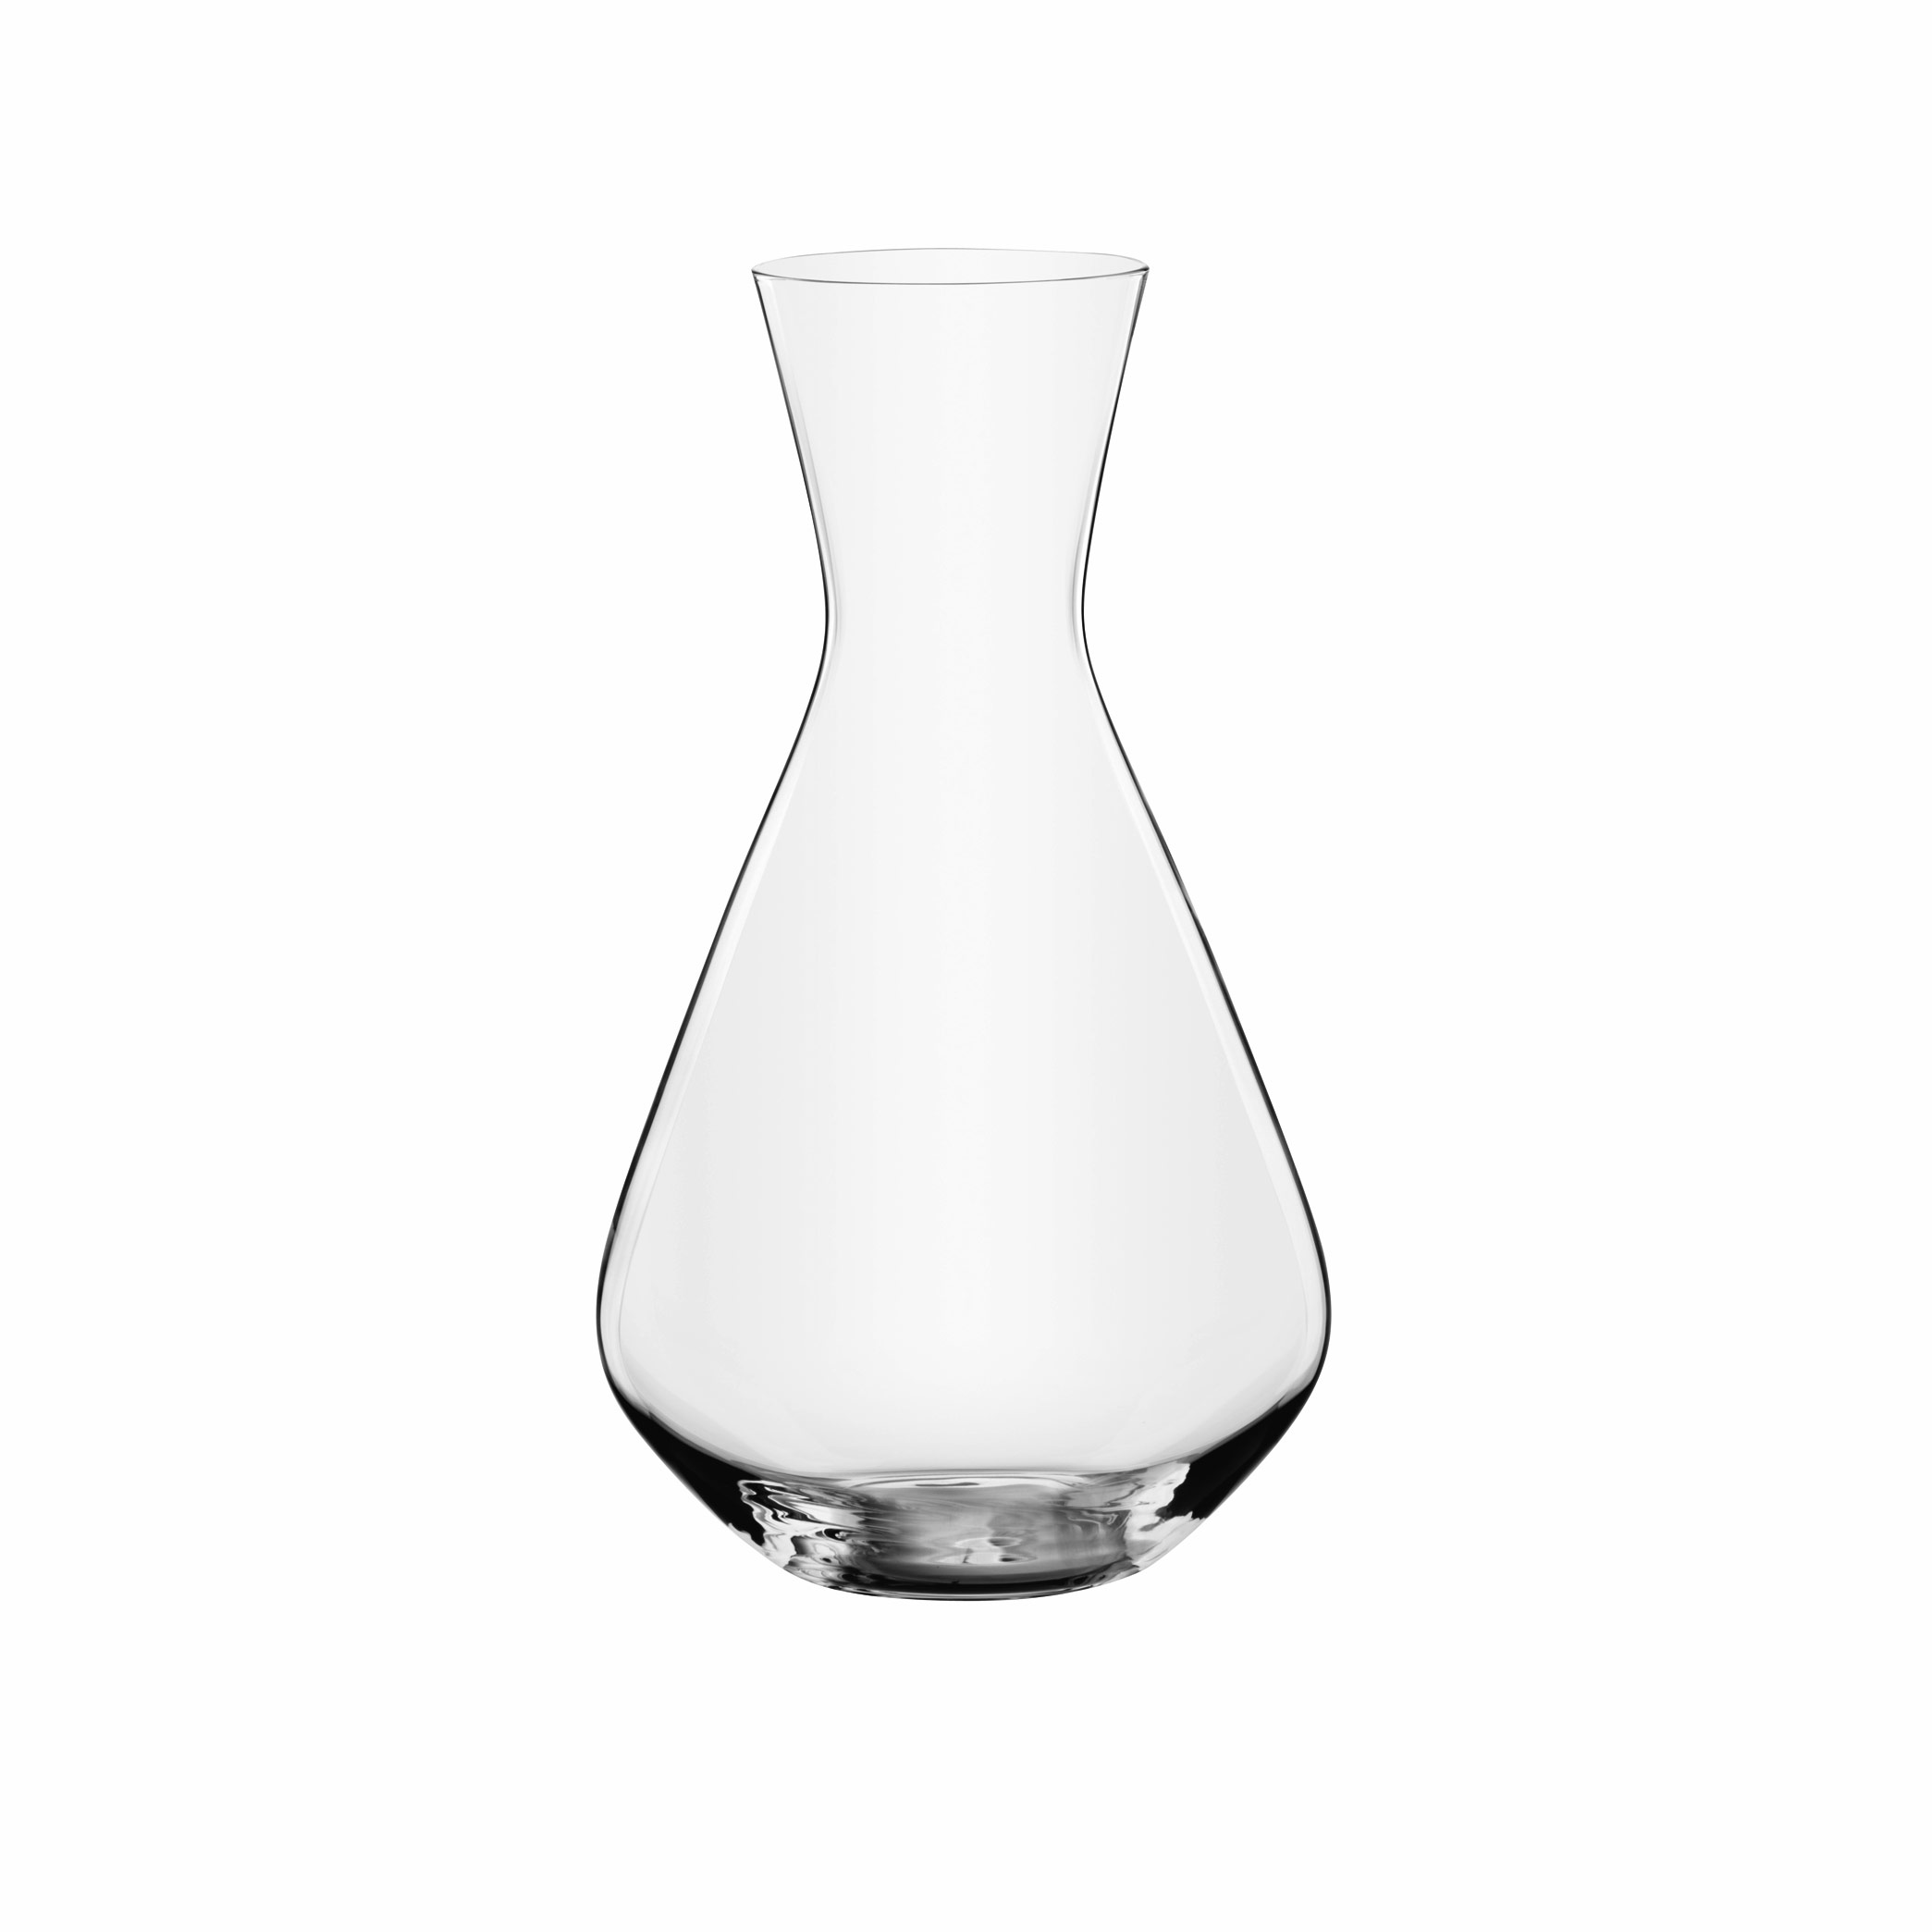 Libbey Glass 4800188 decanter carafe